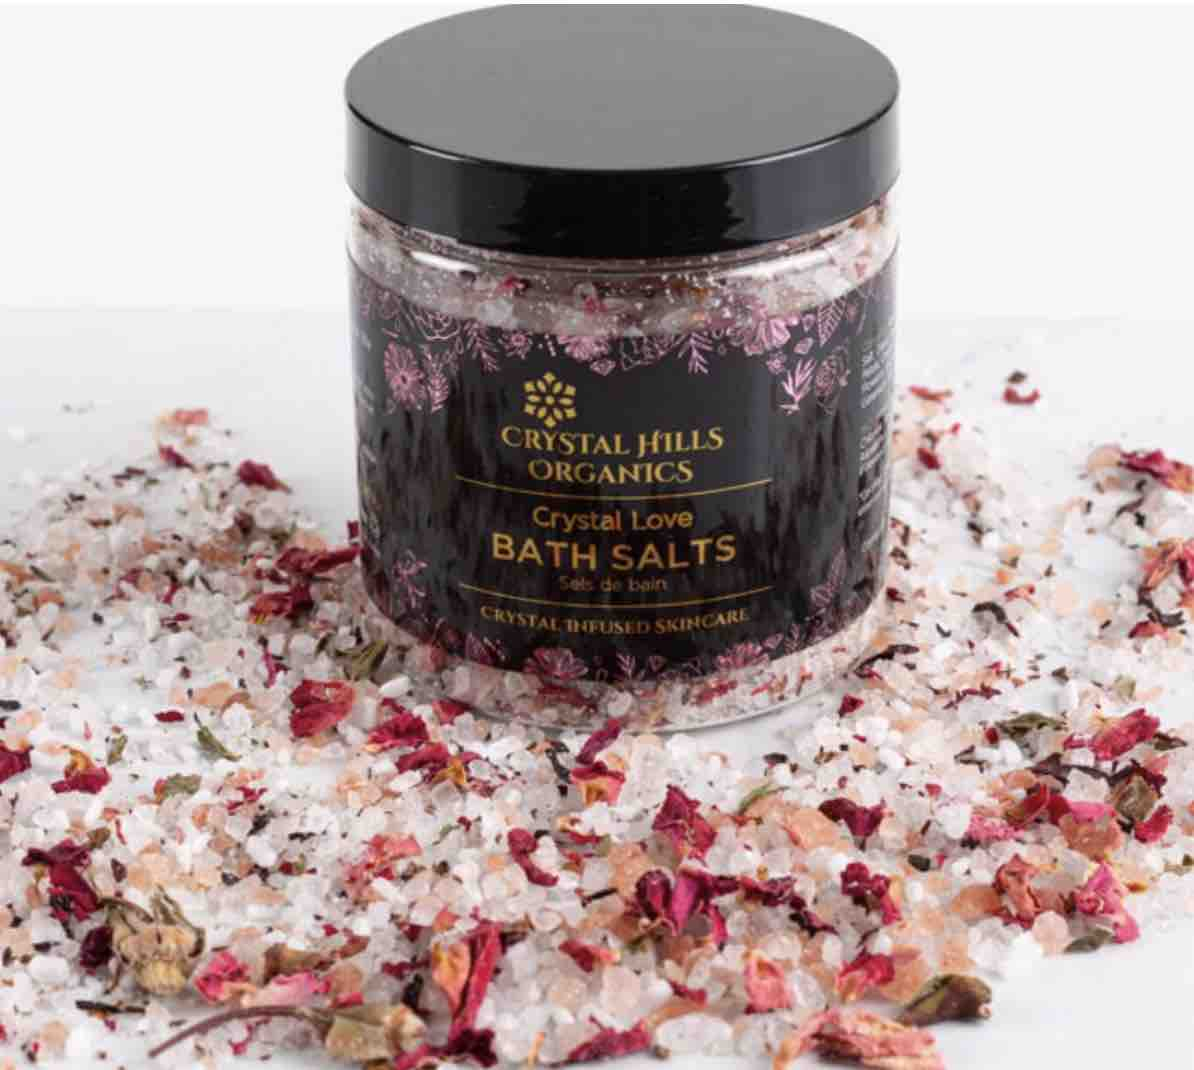 Bath Salts Are On Our List Of Top Things To Do This Valentine's Day At Home To Make It Romantic & Memorable